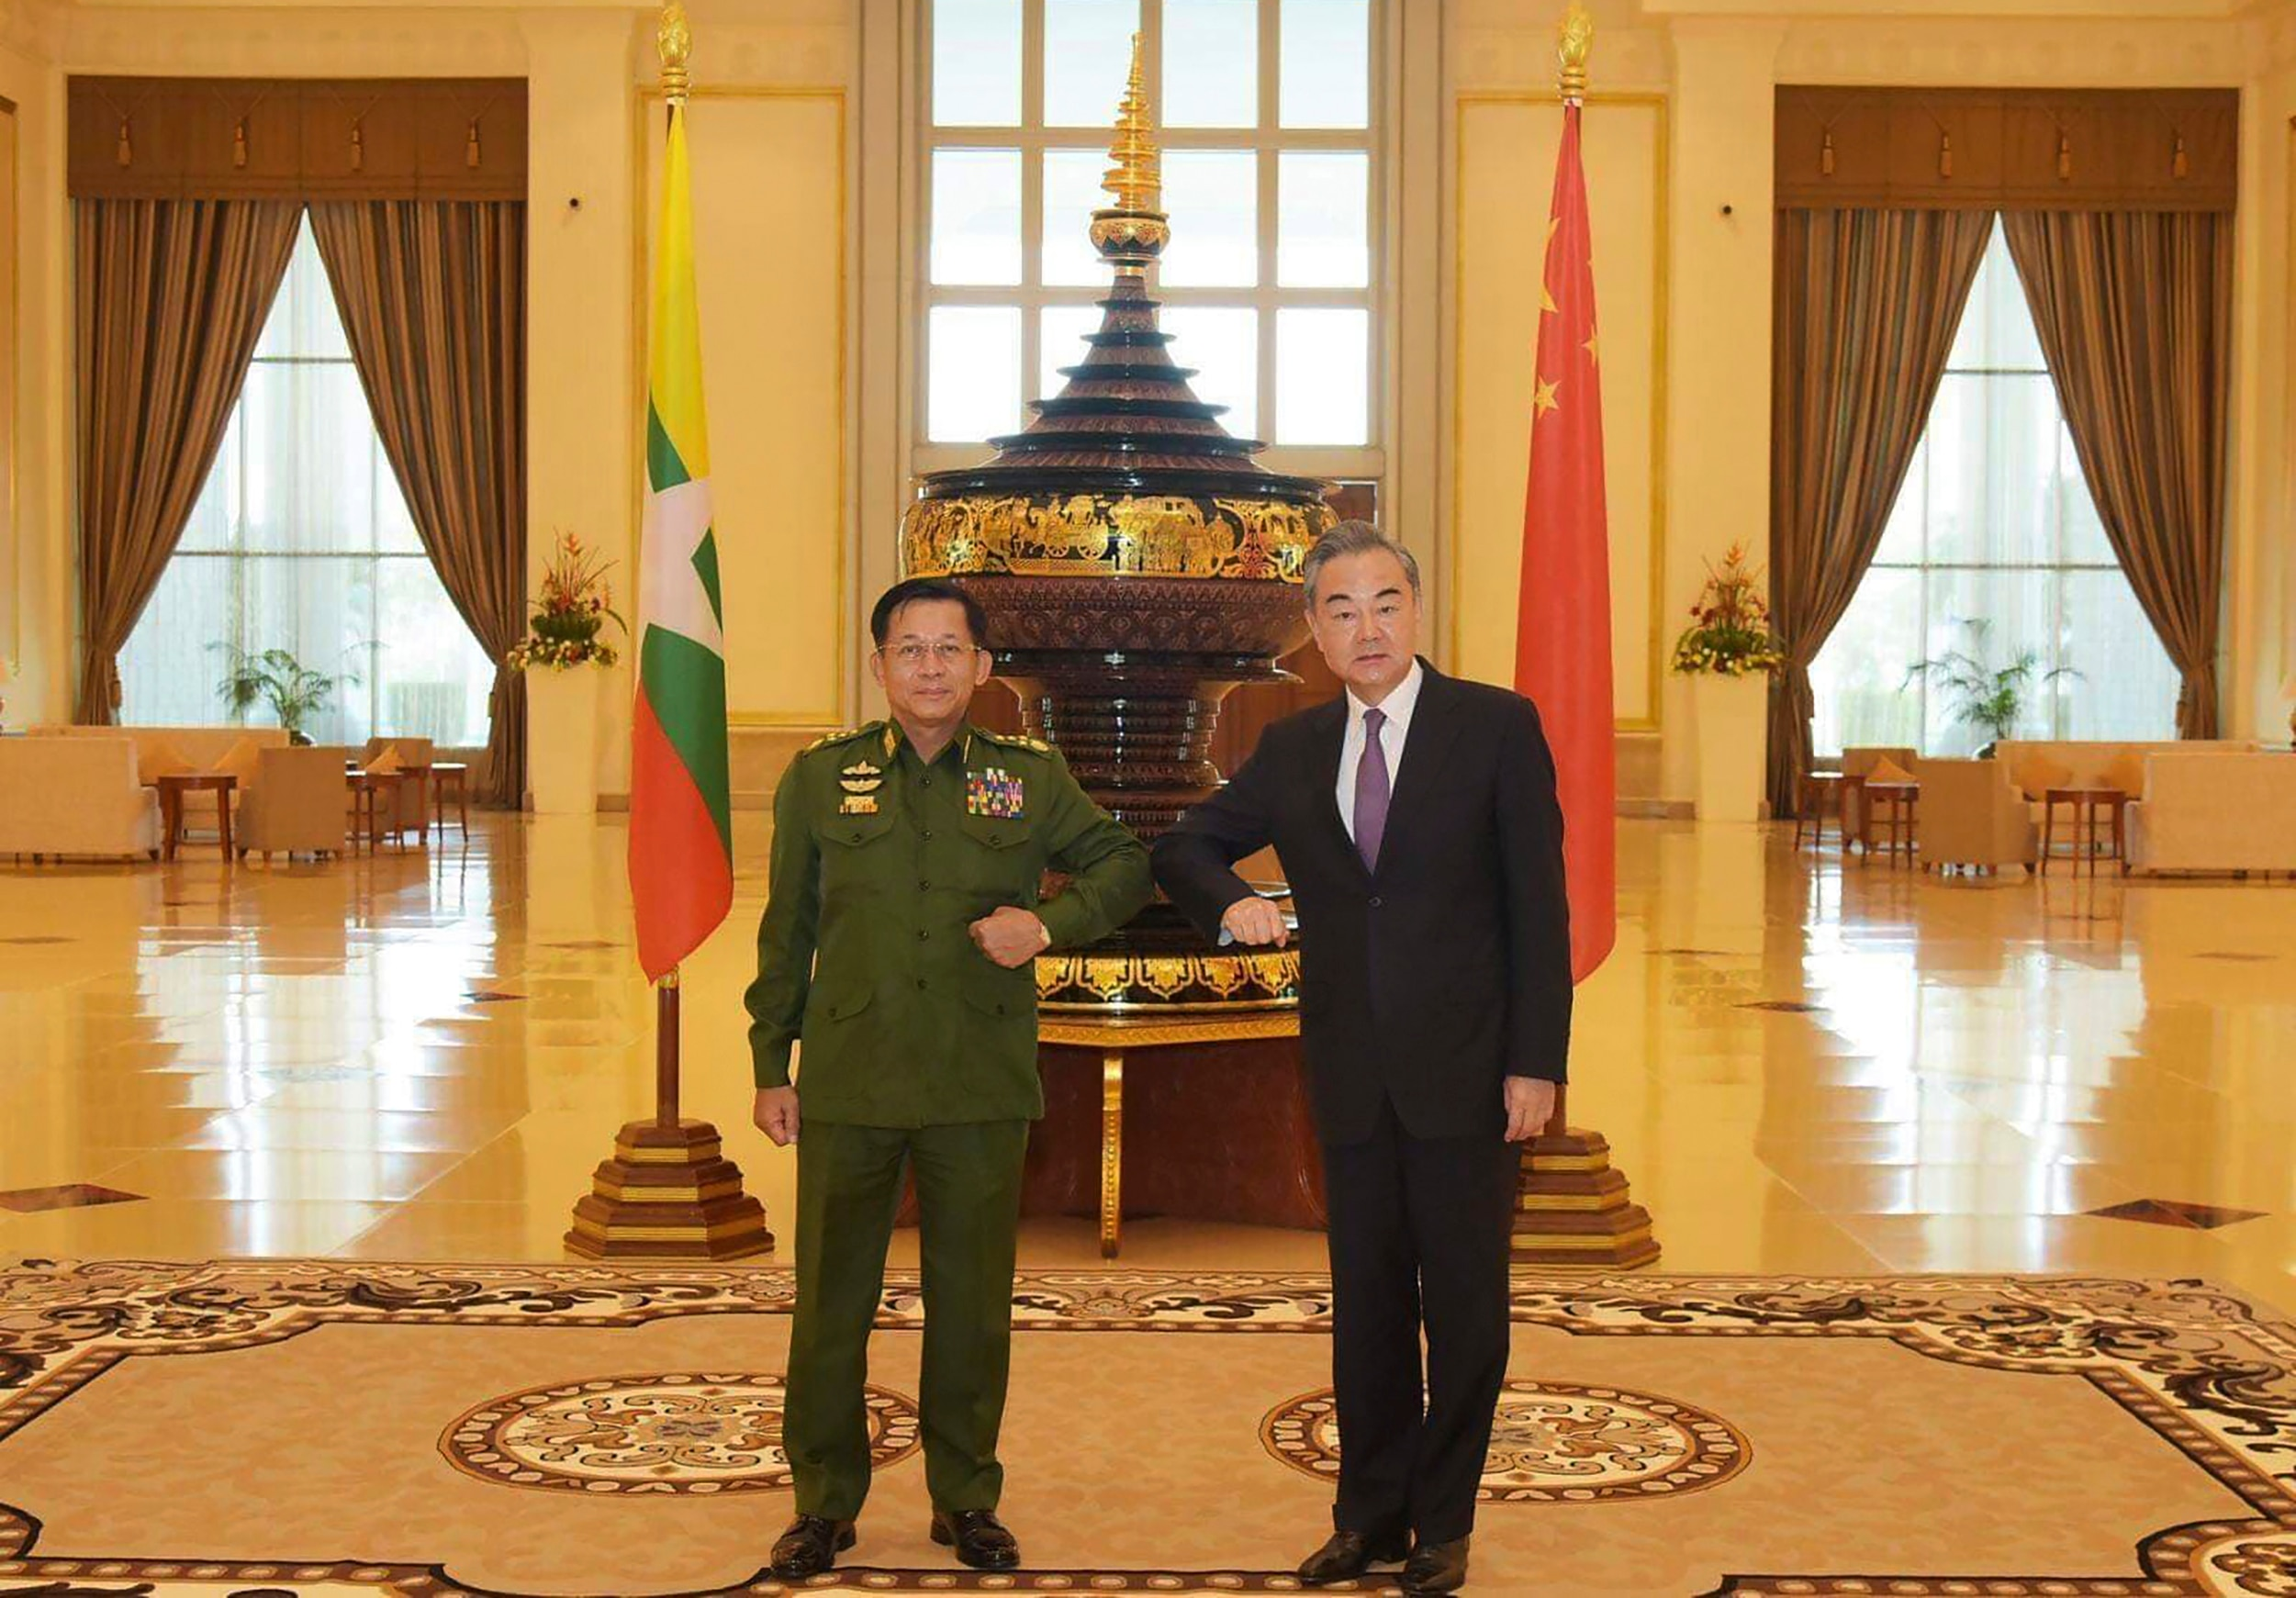 Myanmar Junta Seen Cozying Up to China if West Gets Tough | Voice of  America - English